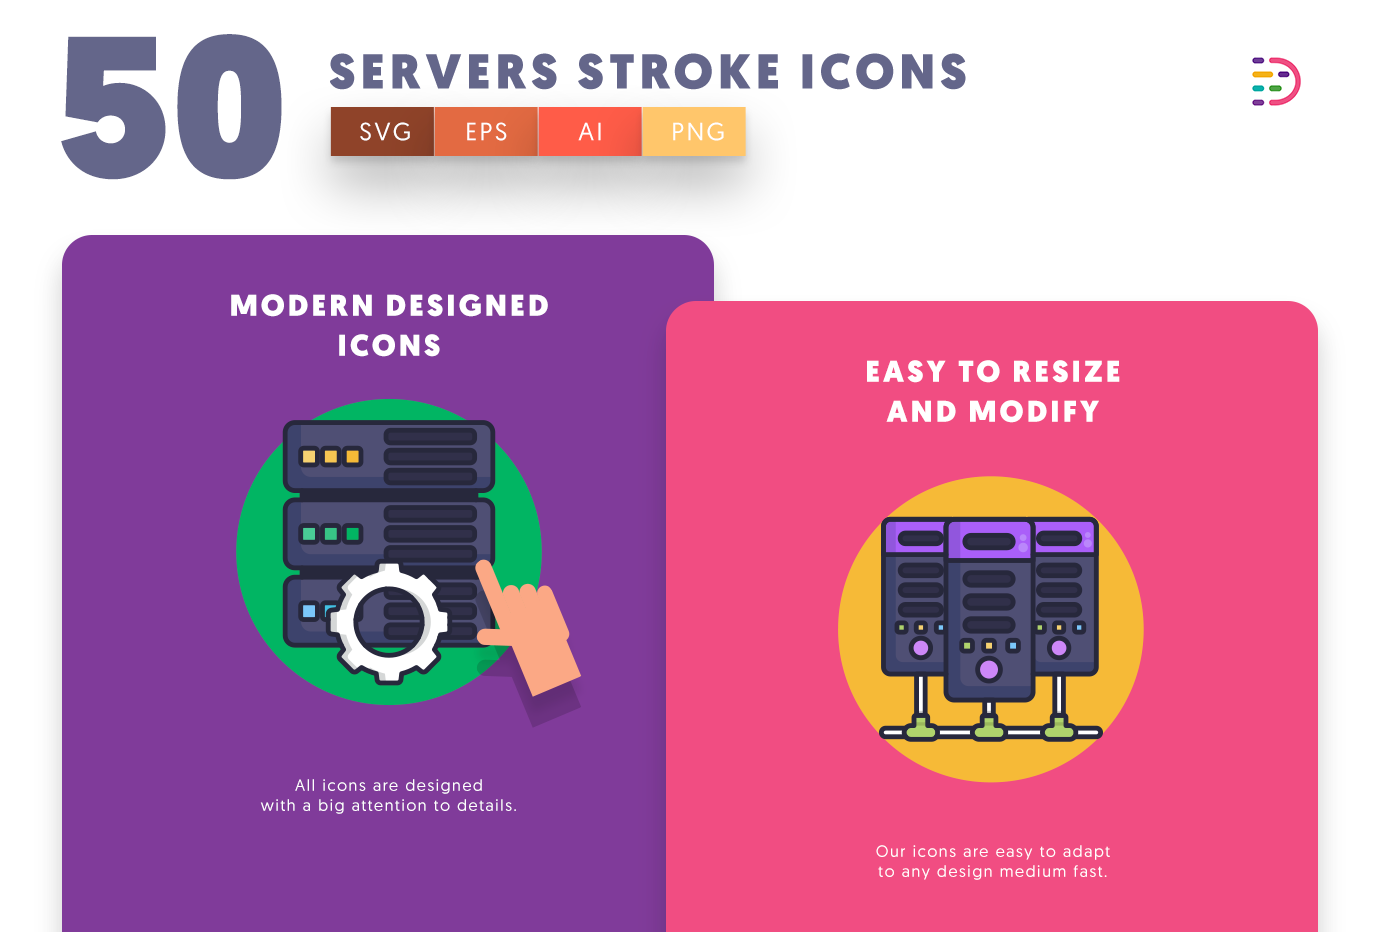 Servers Stroke icons png/svg/eps